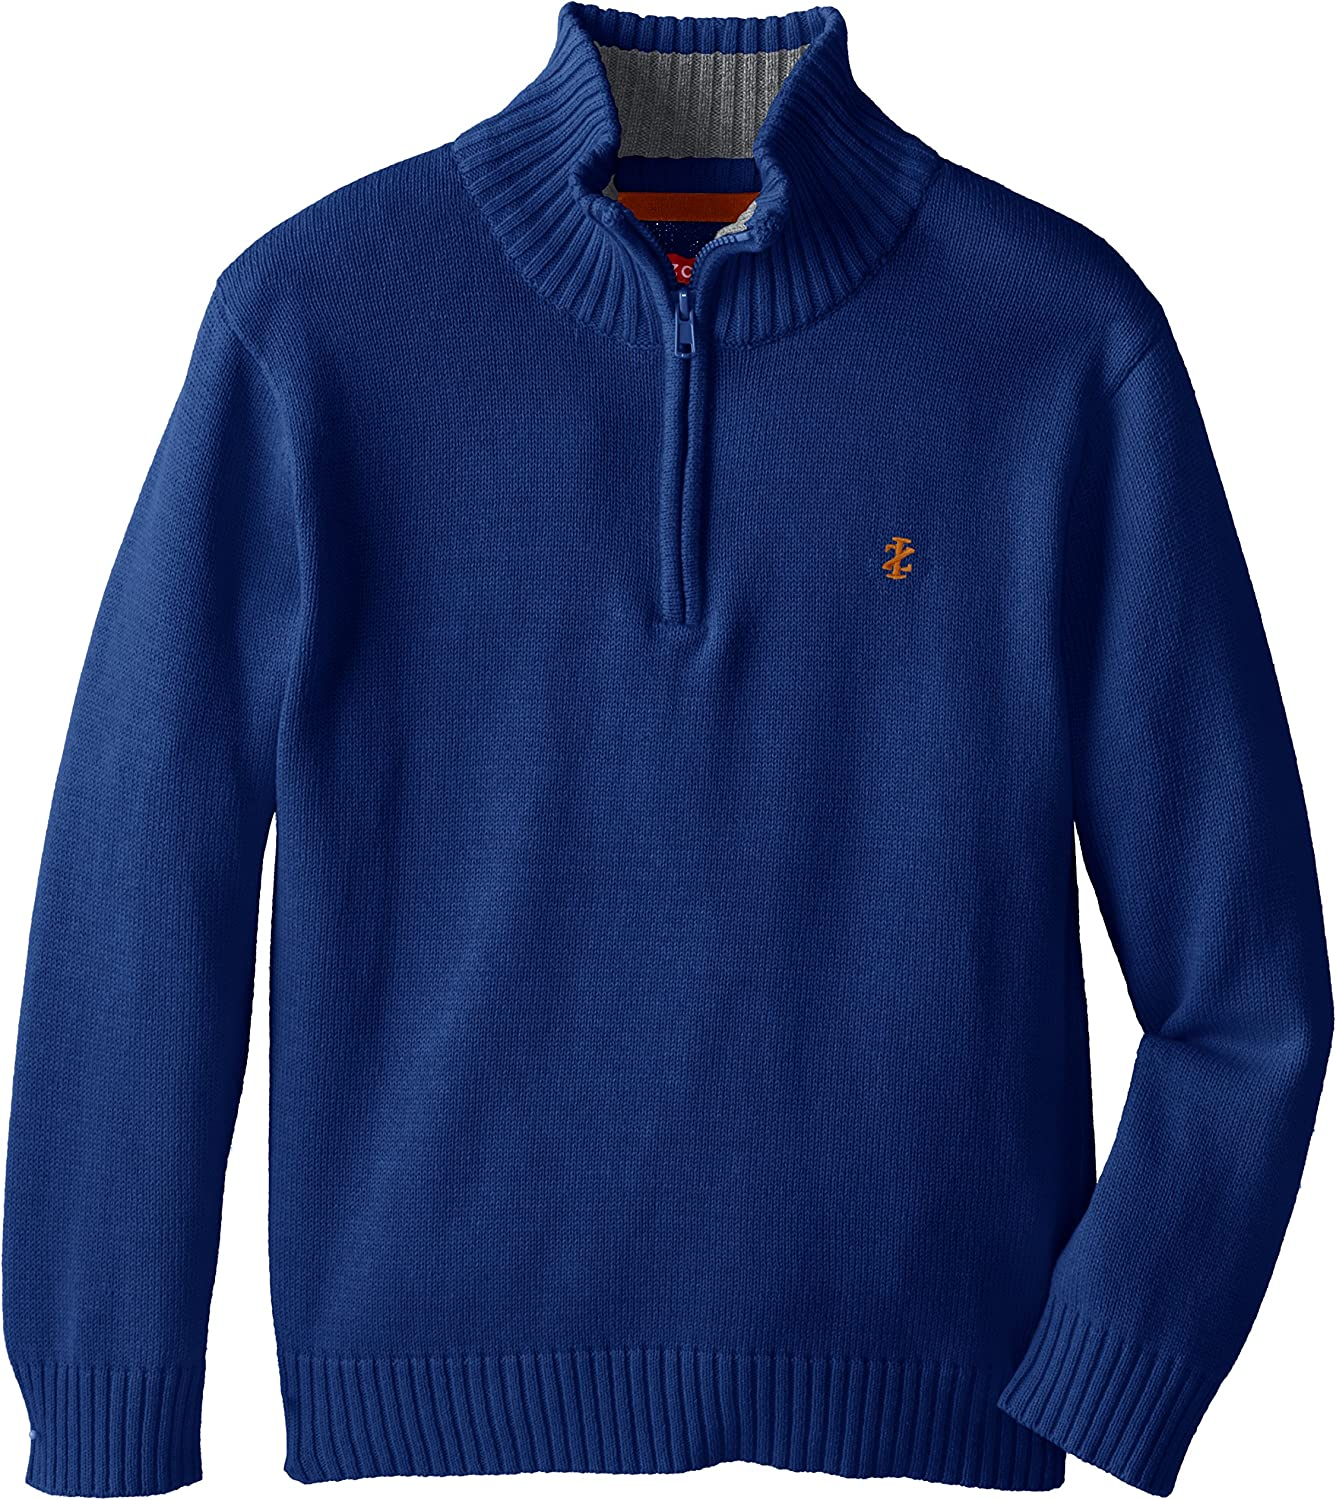 IZOD Boys' Half-Zip Sweater 91srBMxJGXL